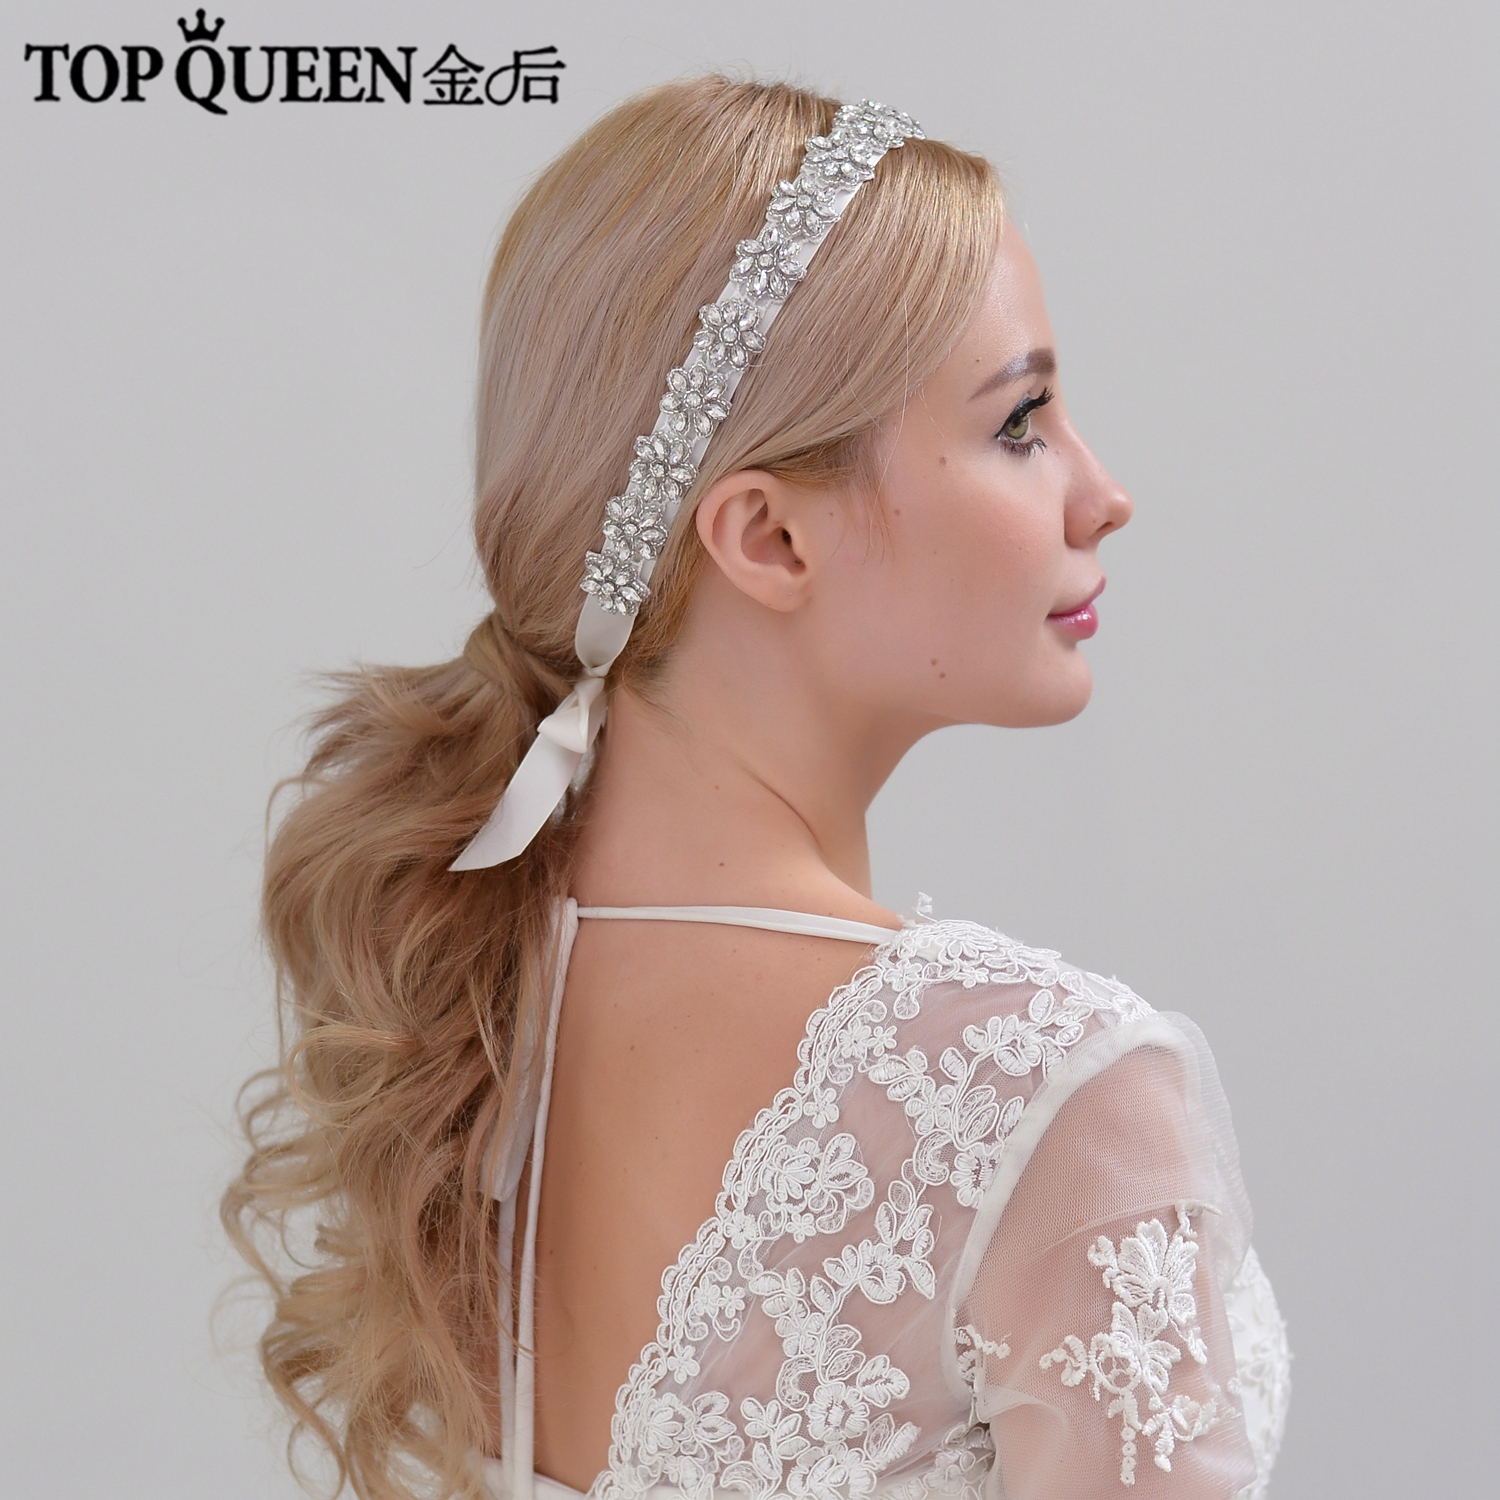 TOPQUEEN H163 Bridal Headbands Bridal Hair Accessories With Pearl  And Crystal Bridal Headpieces Fast Shipping